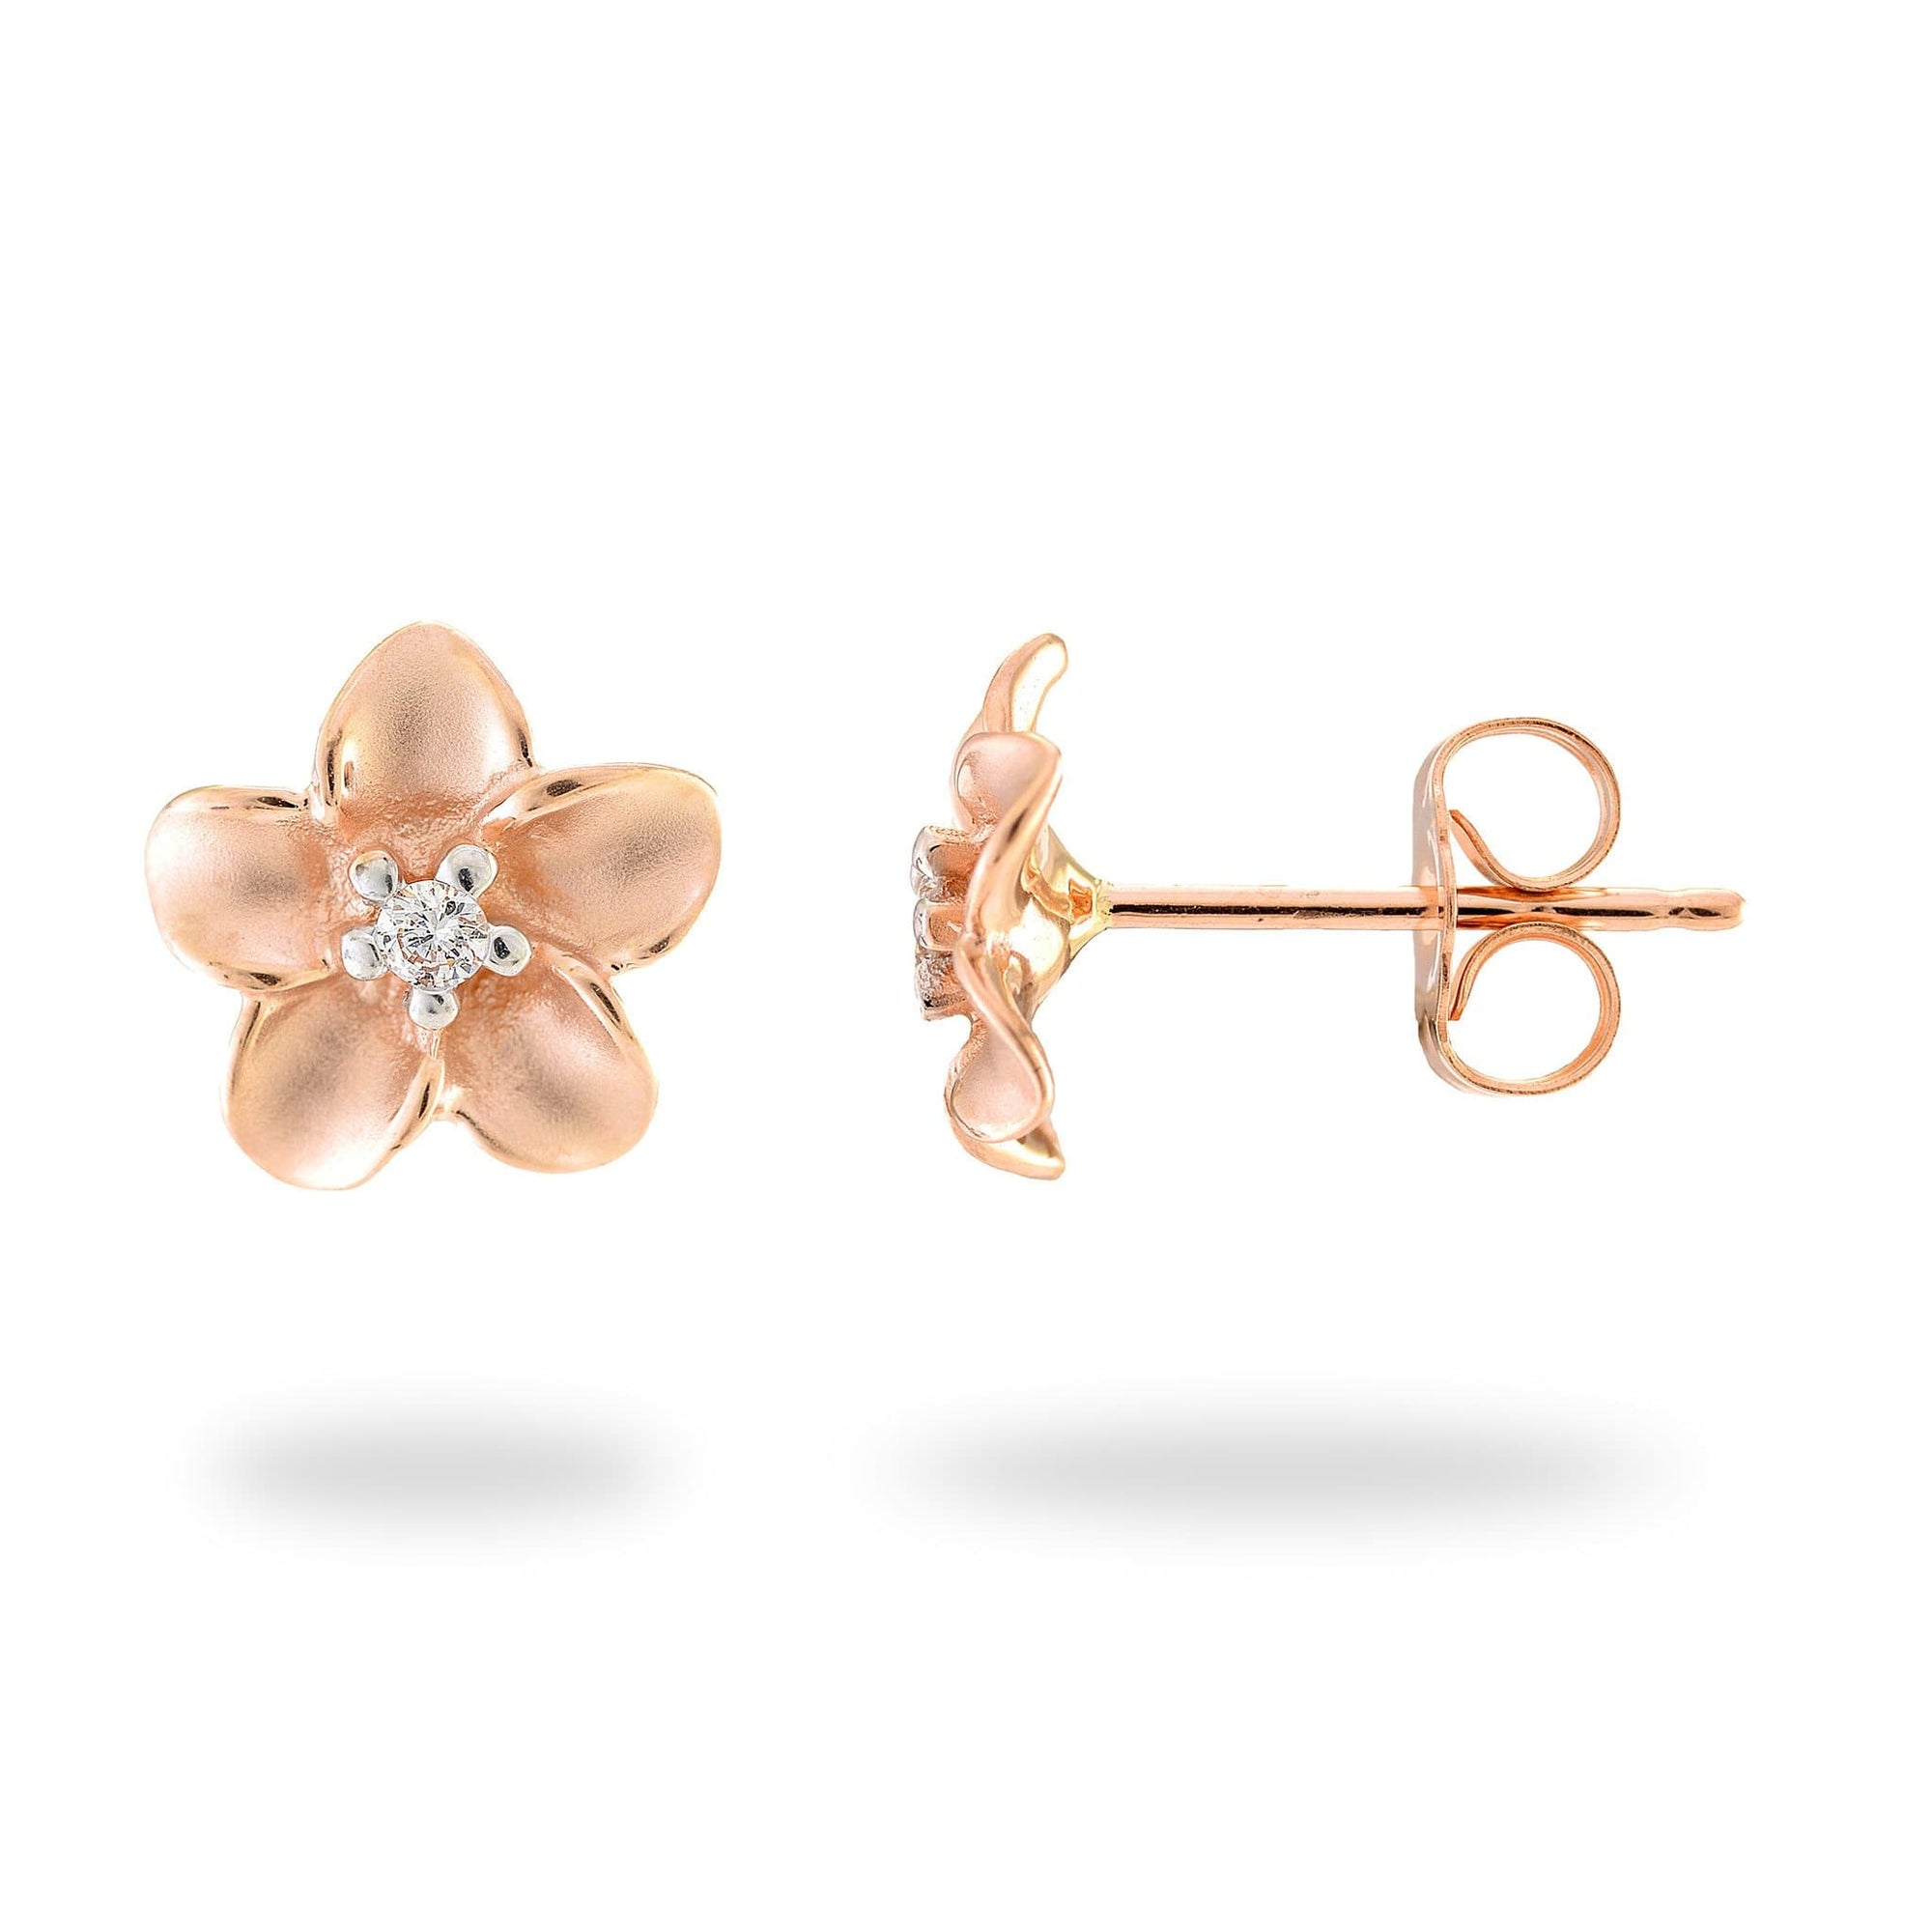 Plumeria Earrings with Diamonds in 14K Rose Gold - 9mm - Maui Divers Jewelry